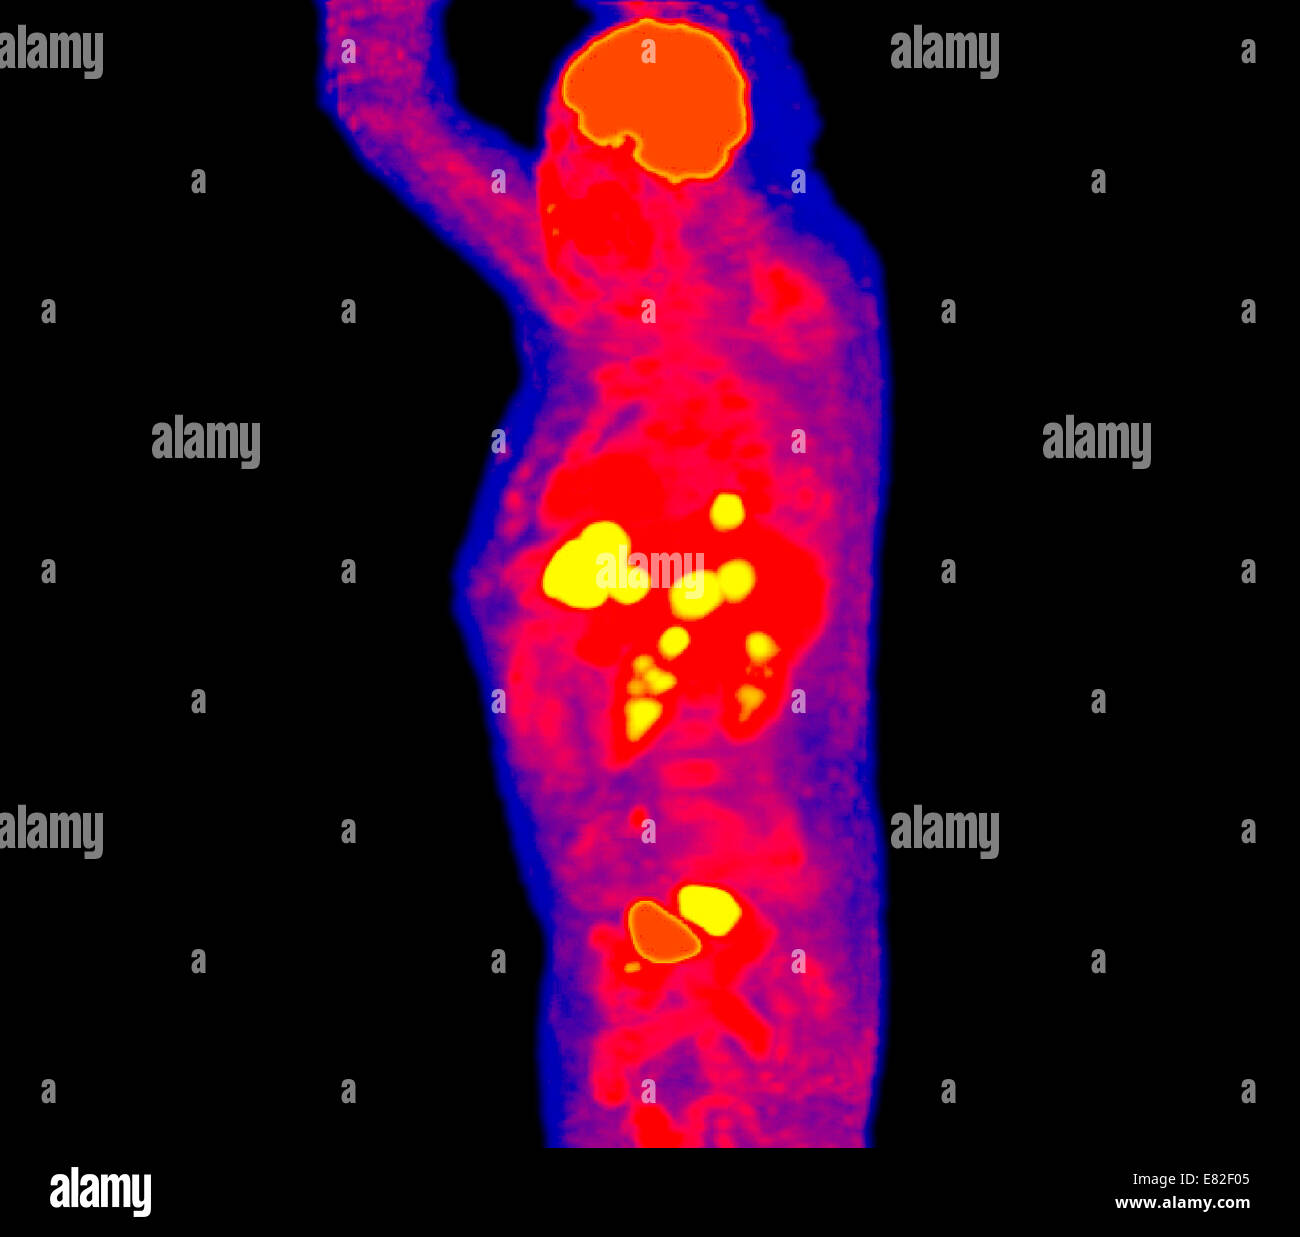 Positron emission tomography (PET) scans of a patient with a rectum cancer and hepatic metastasis. - Stock Image